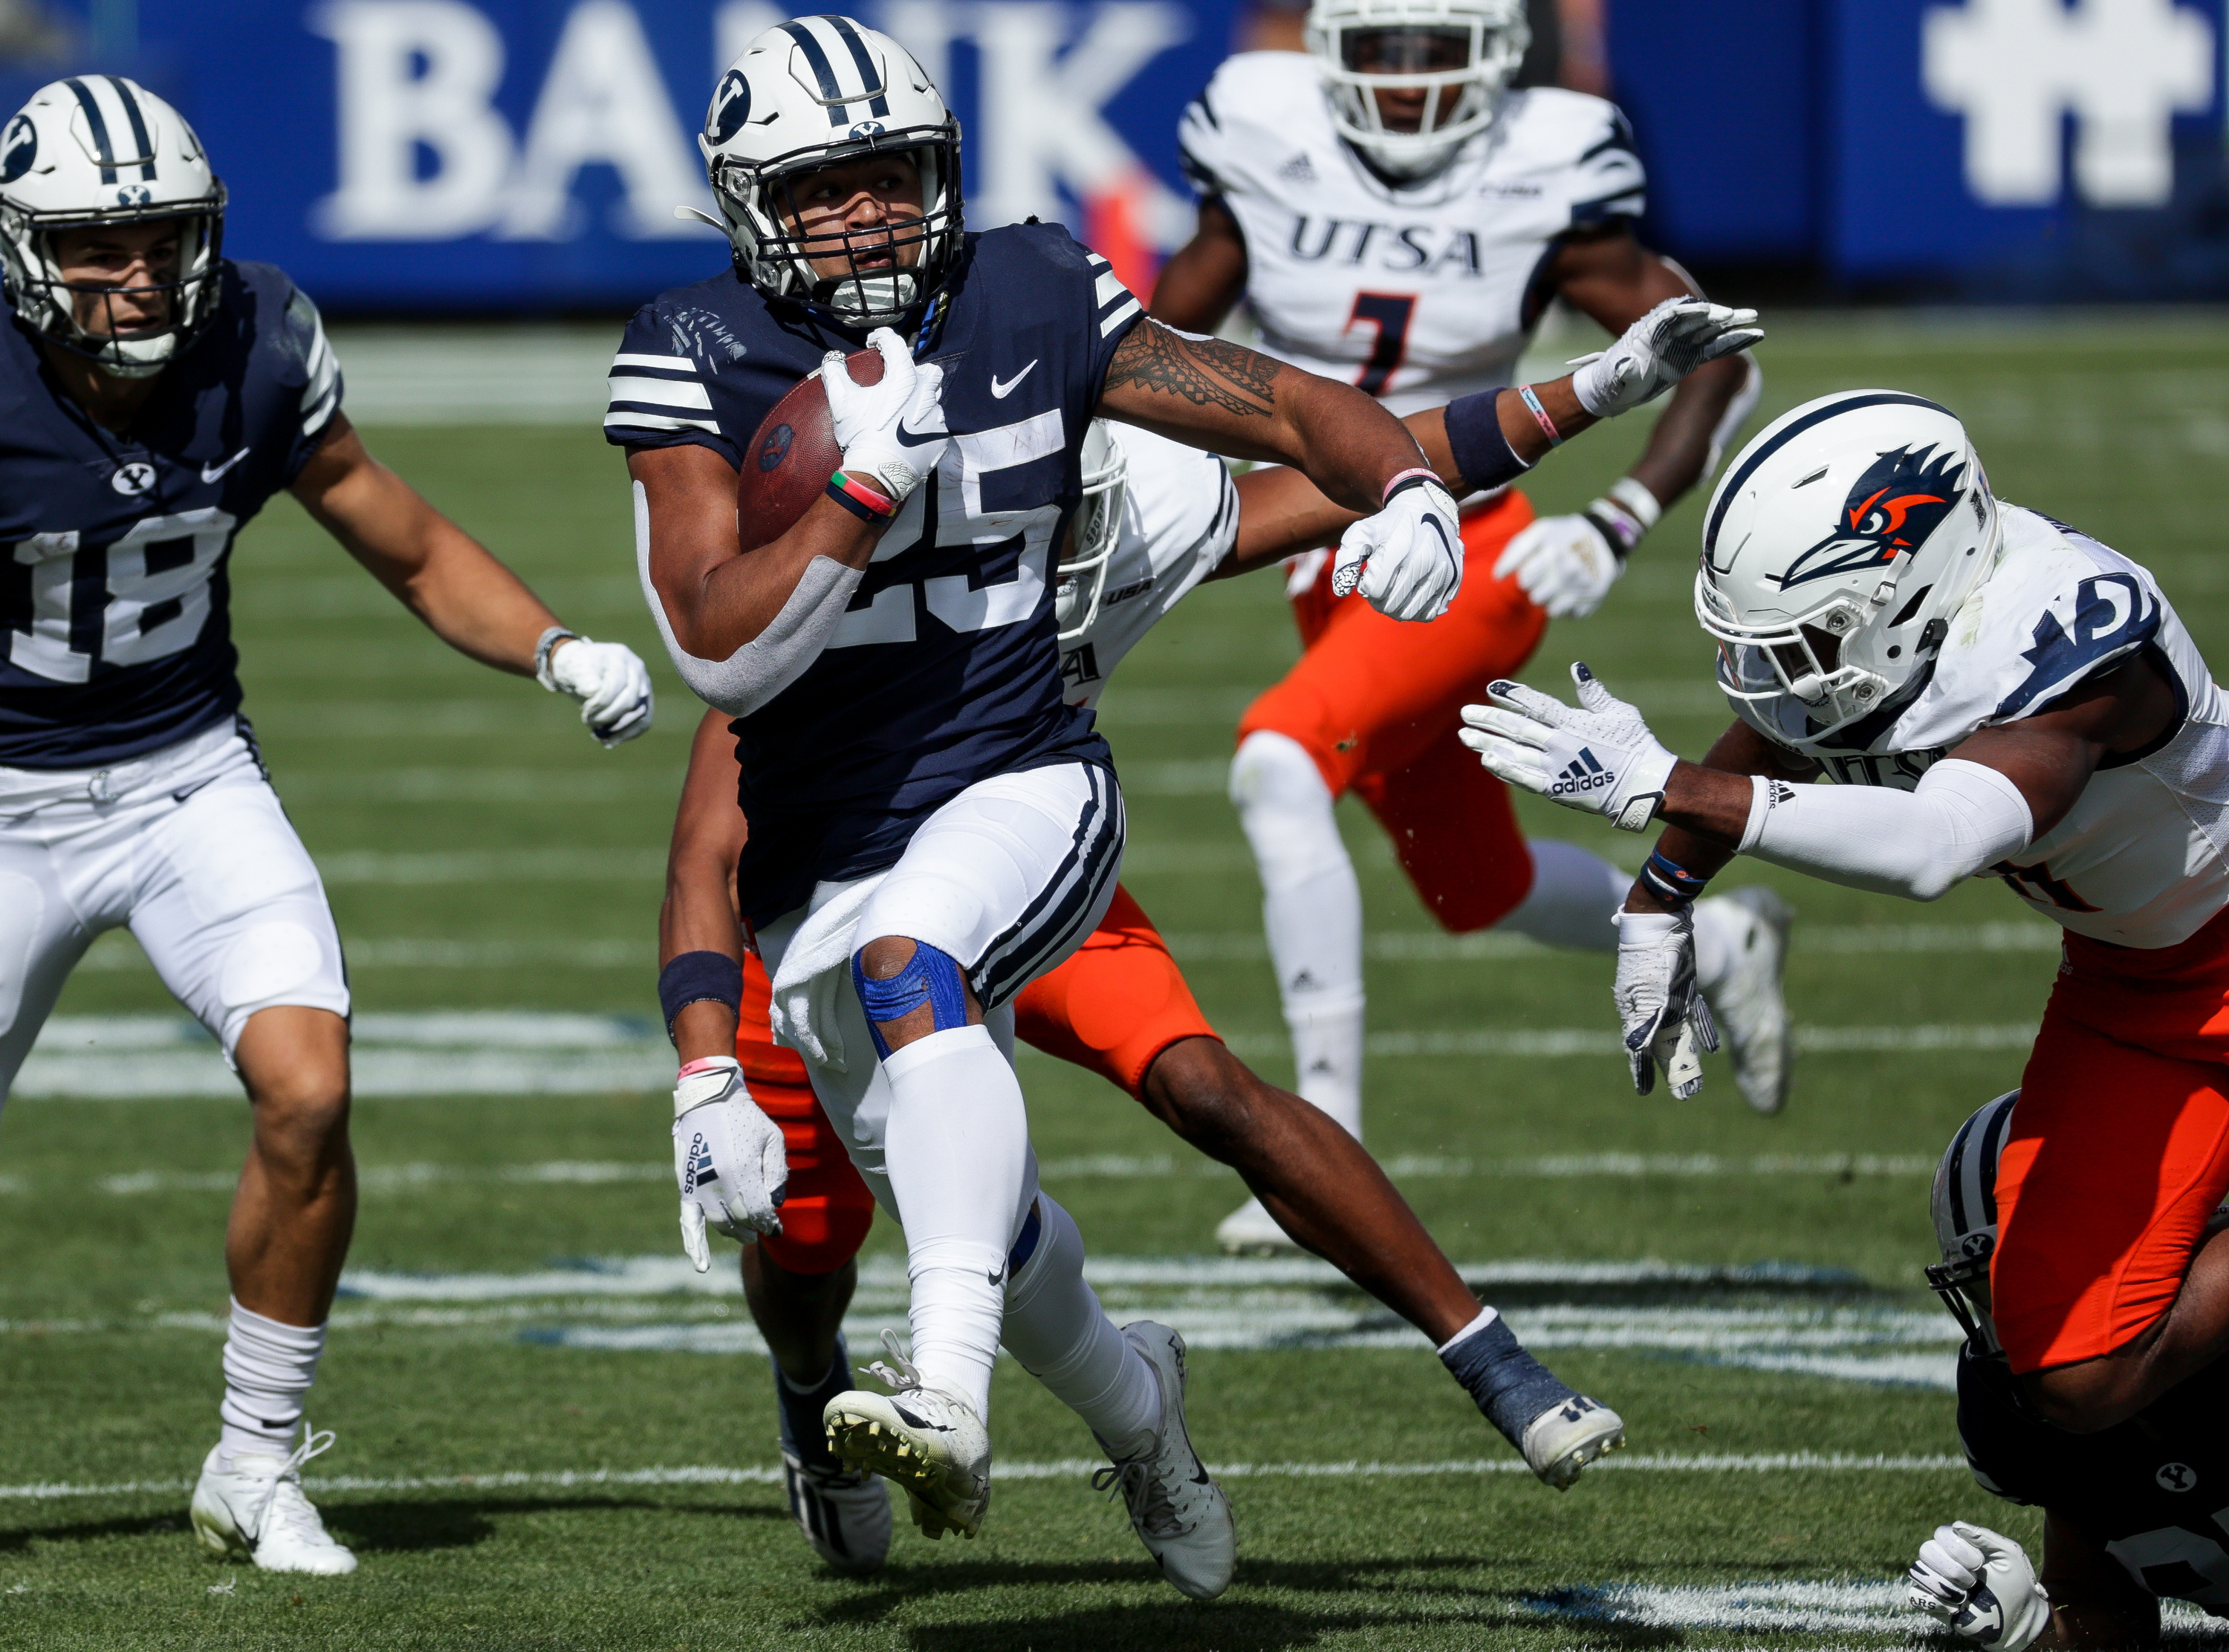 Brigham Young Cougars running back Tyler Allgeier (25) runs the ball during the game against the UTSA Roadrunners at LaVell Edwards Stadium in Provo on Saturday, Oct. 10, 2020.